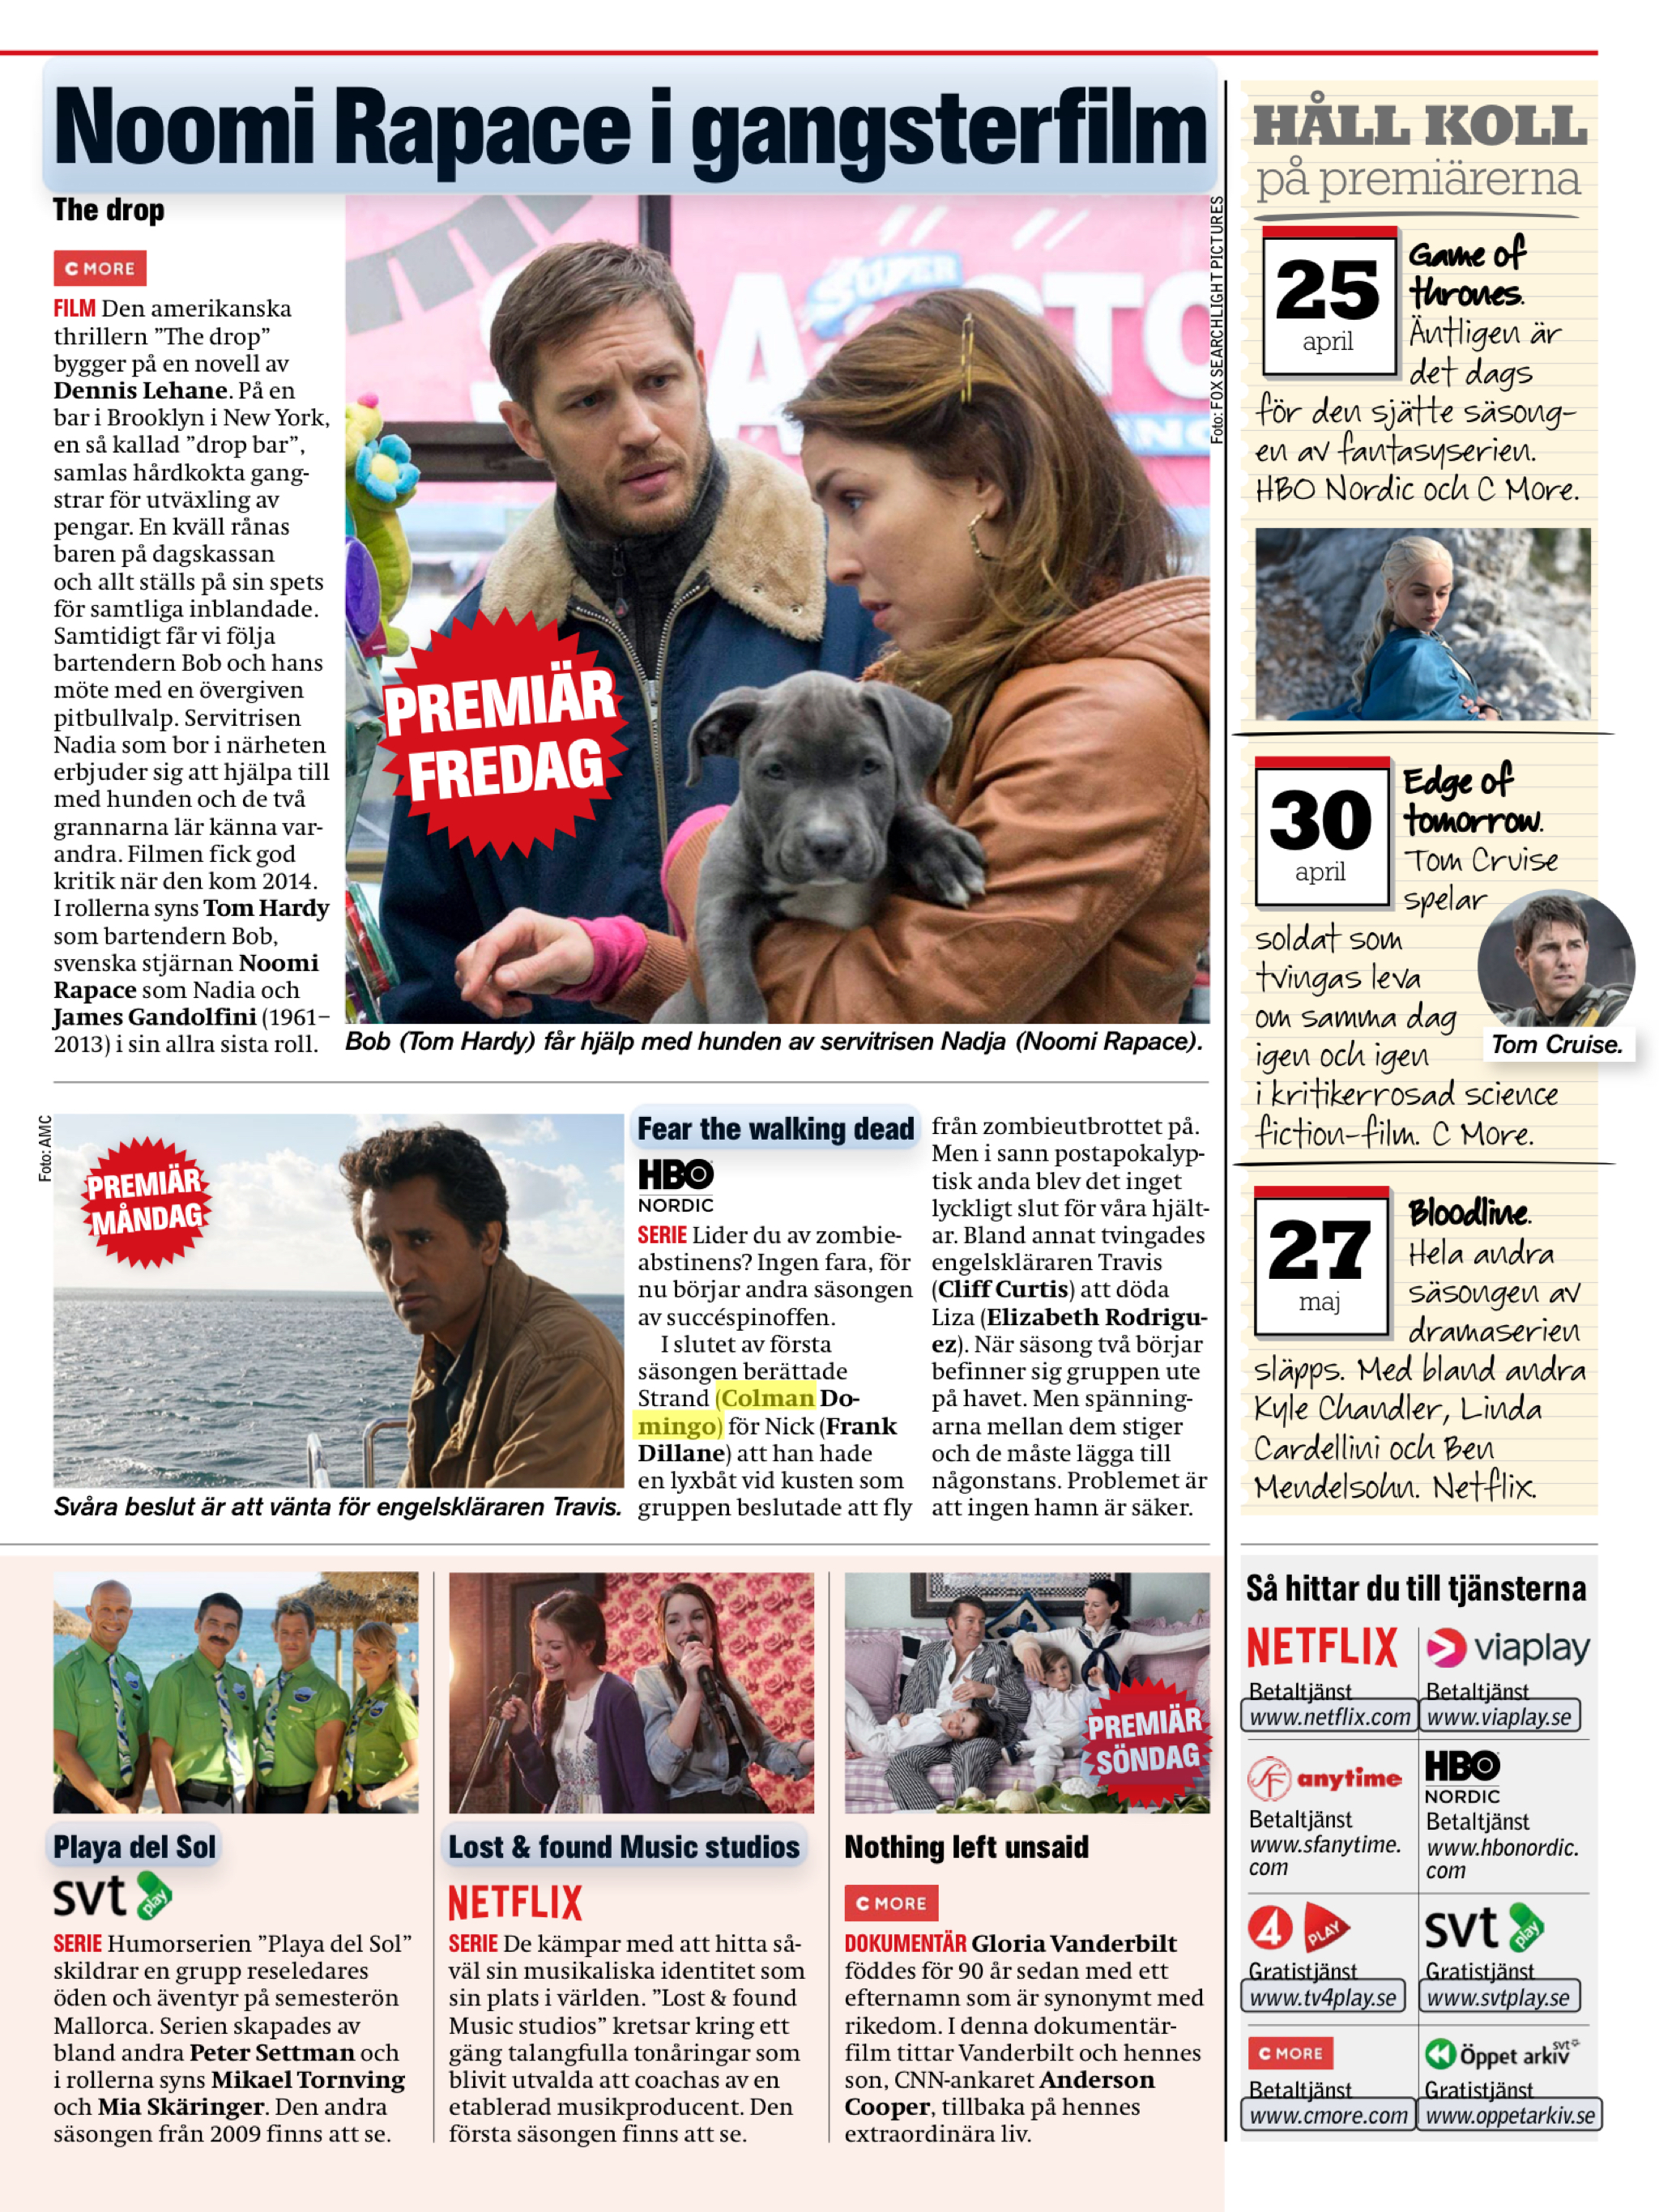 TV Aftonbladet Sweden | Monday TV Pick- Fear The Walking Dead